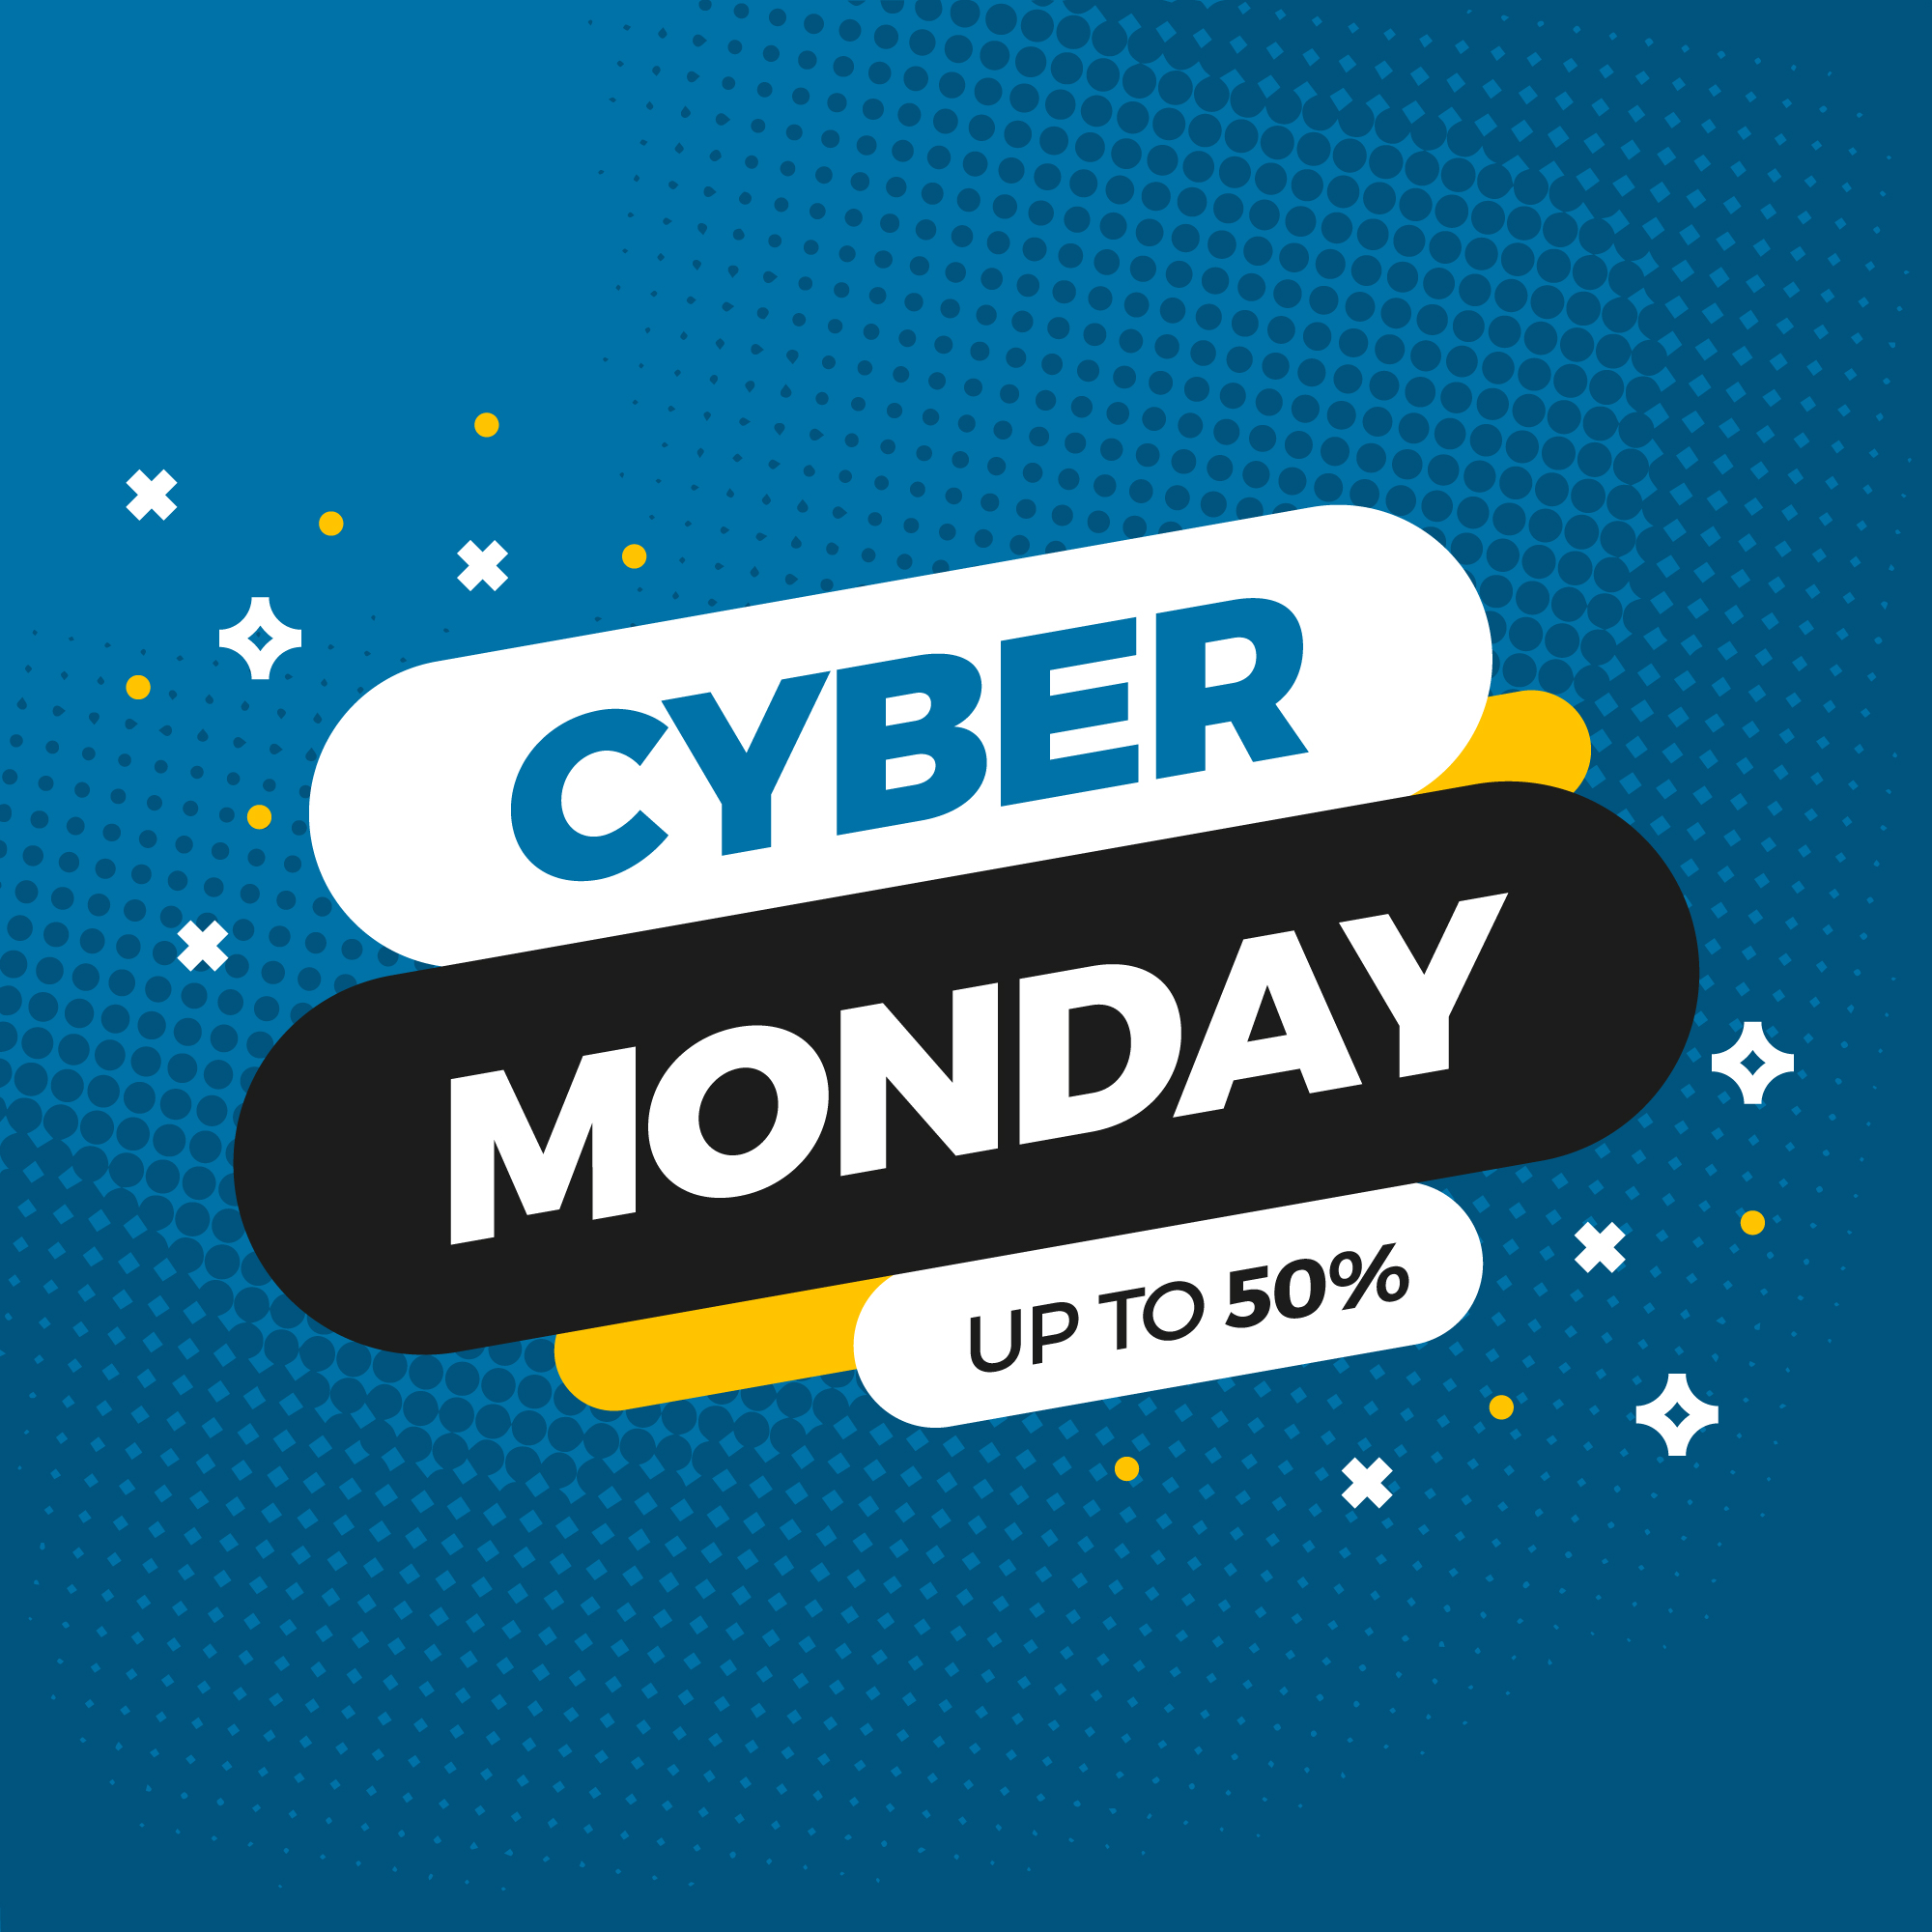 cyber monday up to 50% square social media post